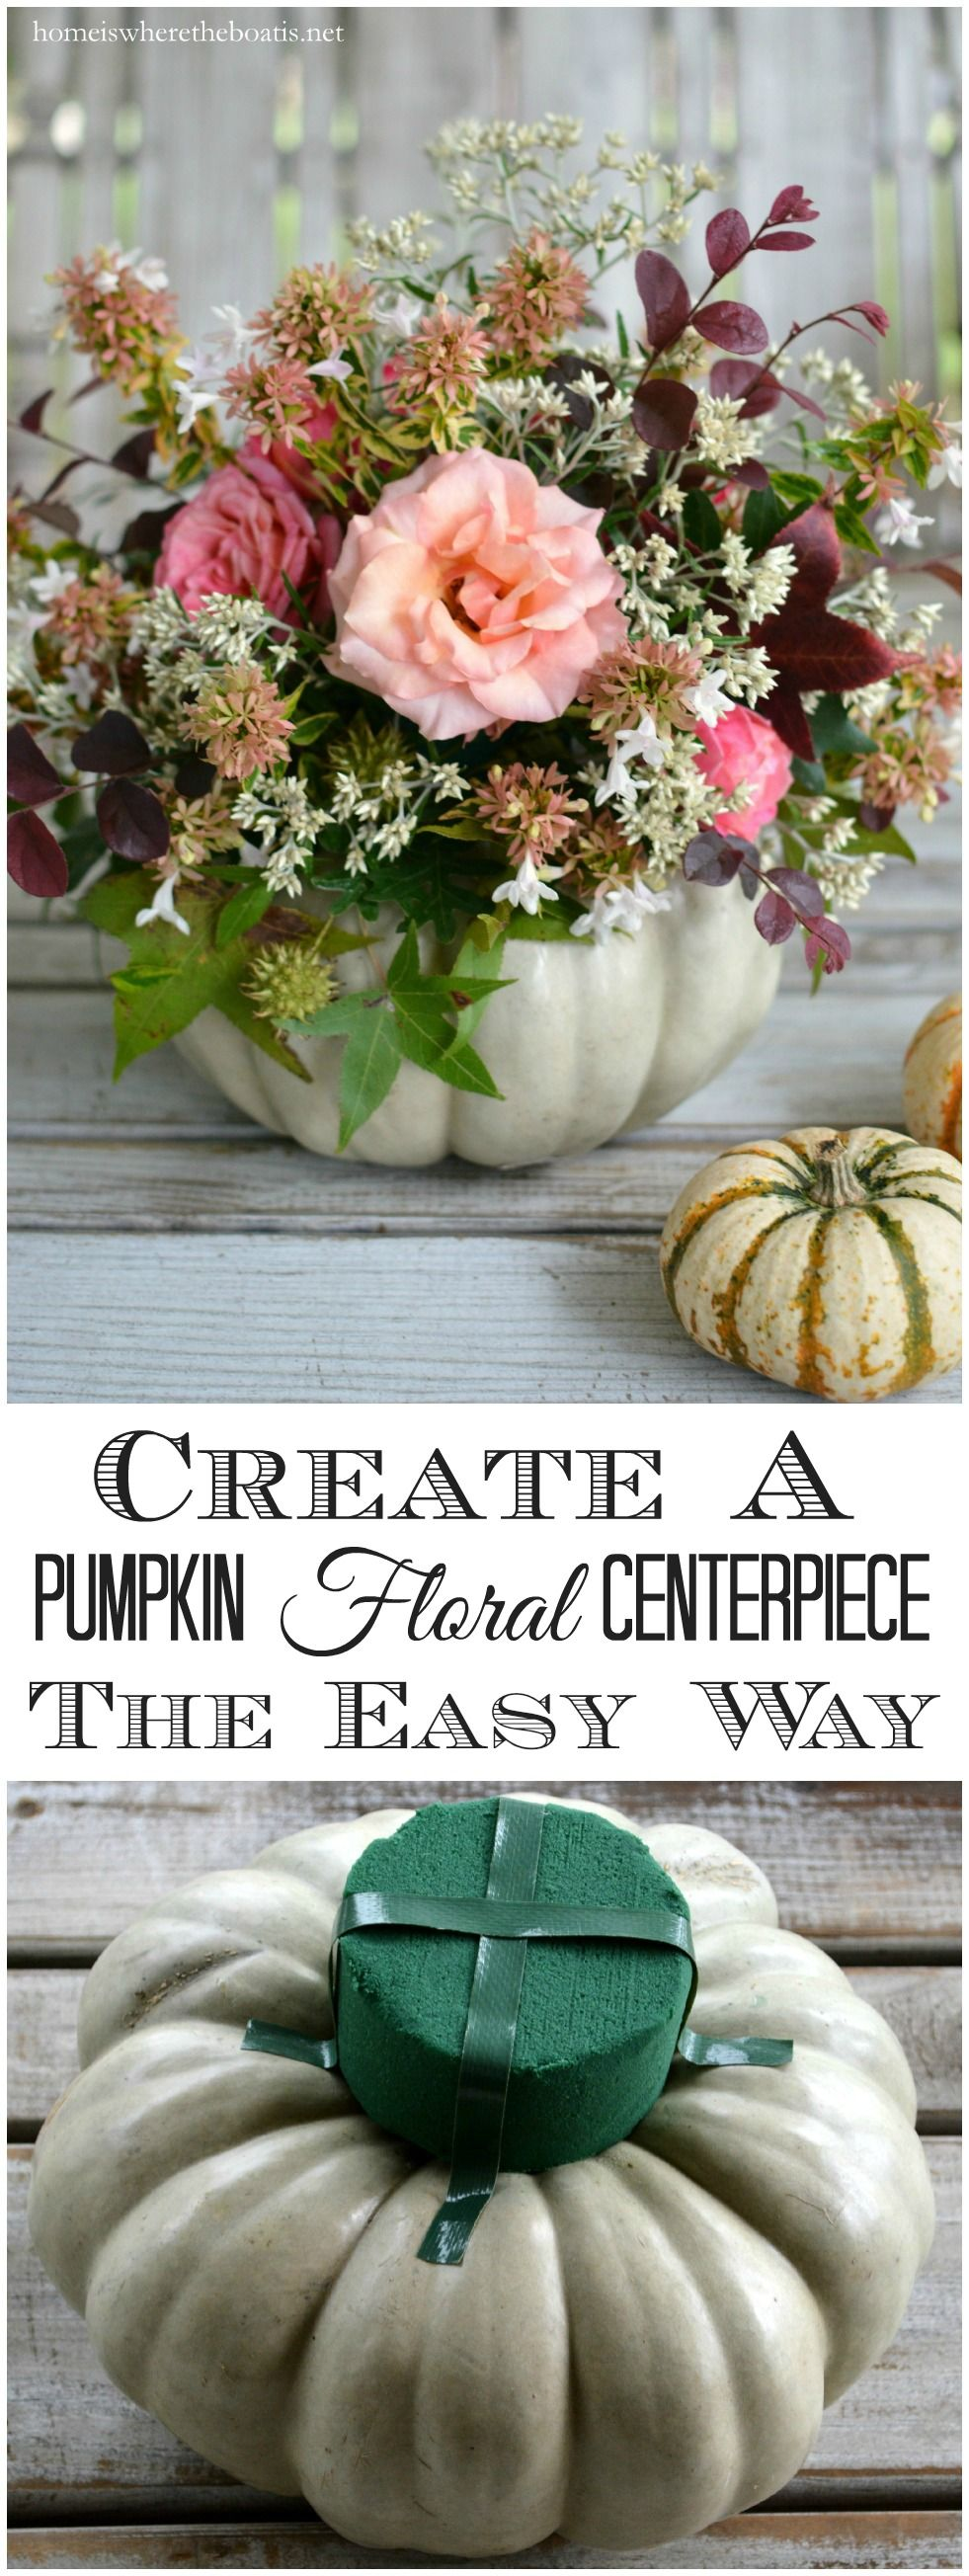 Create a Pumpkin Floral Centerpiece the easy way, no carving required! |  homeiswheretheboatis. Pumpkin Table DecorationsHalloween Table Centerpieces Autumn ...